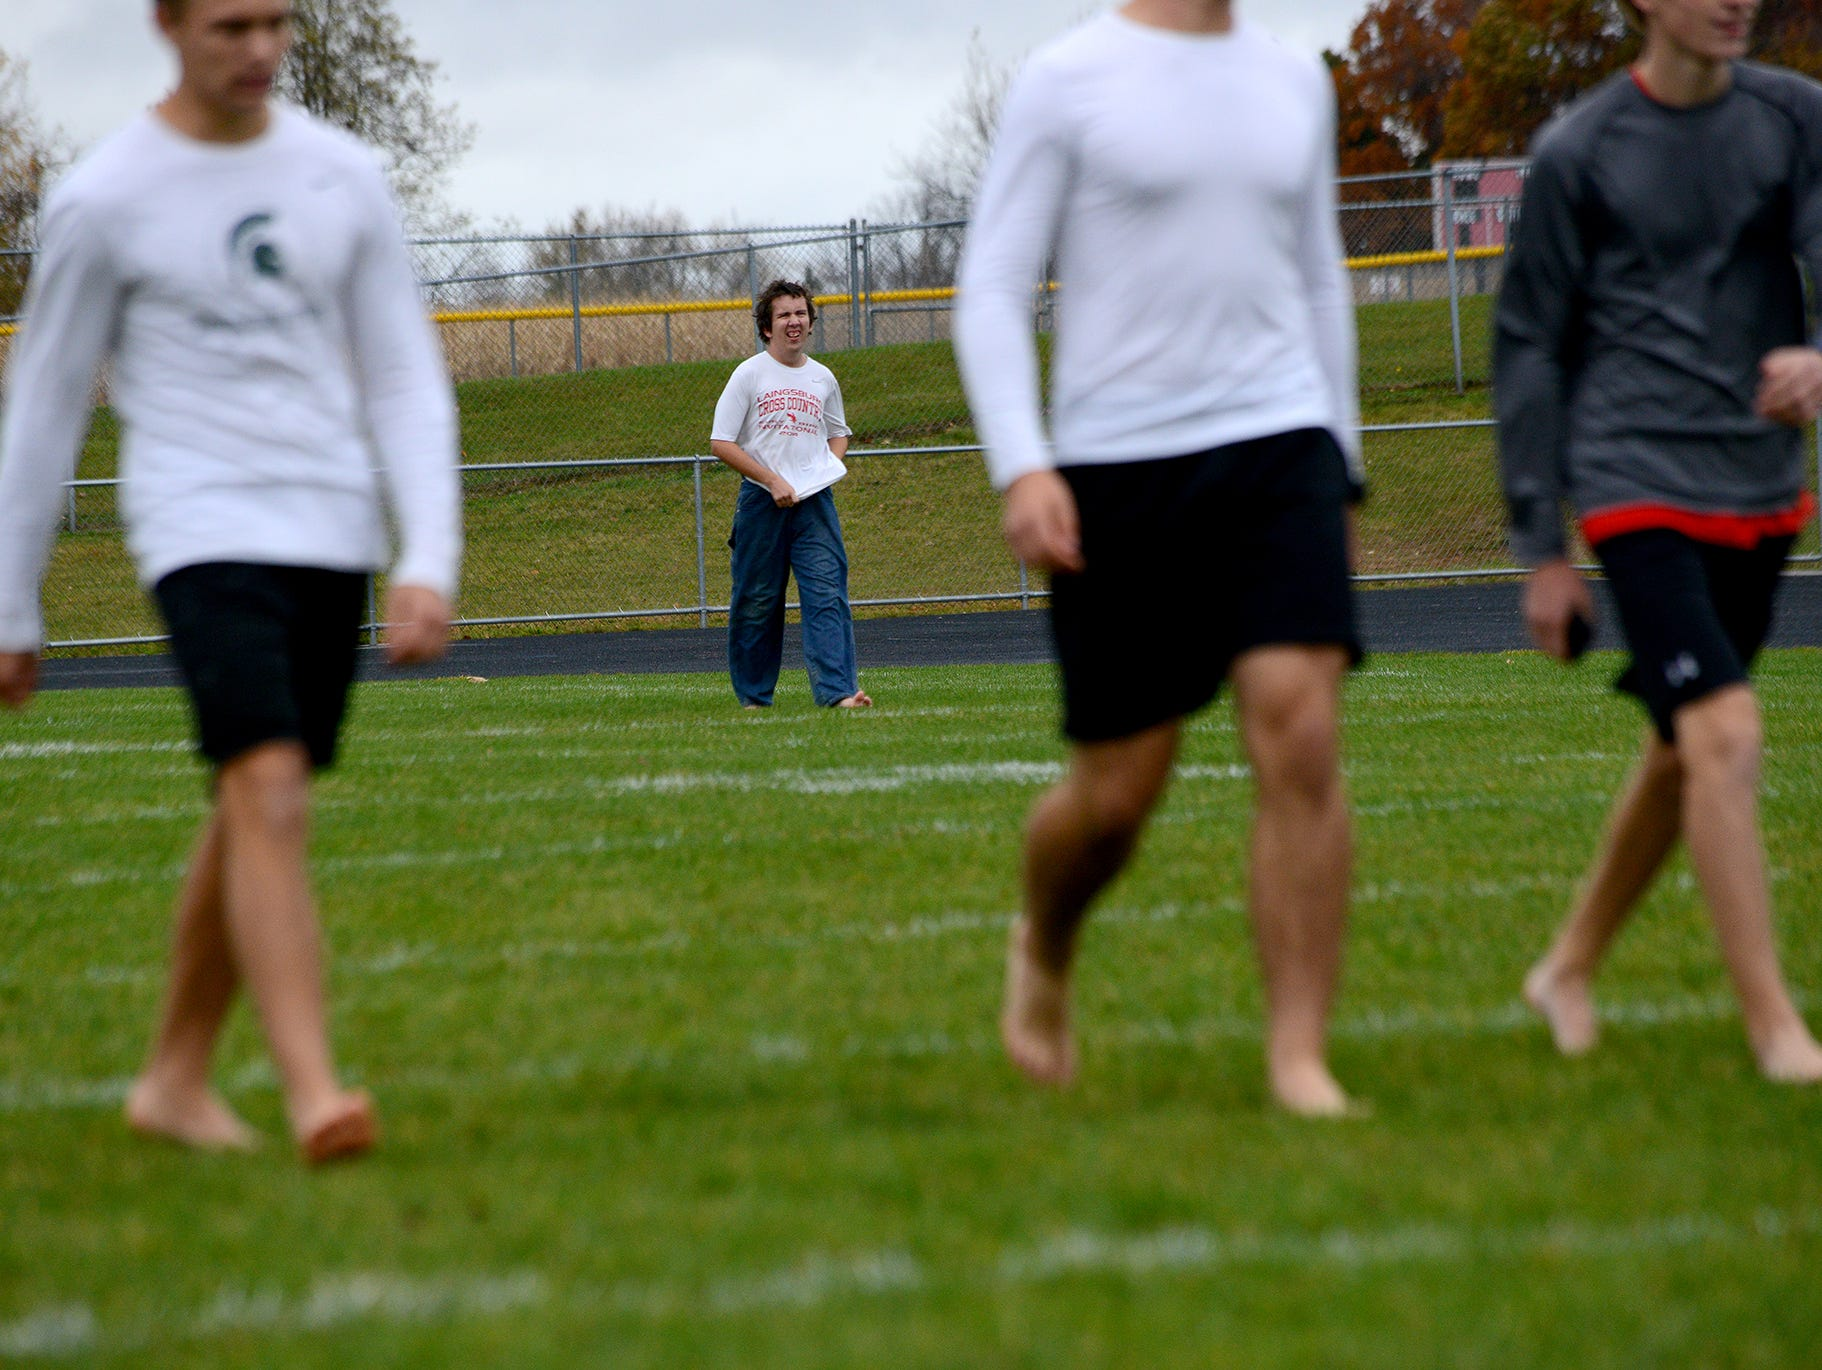 """Ray Latchaw practices with his teammates on the Laingsburg cross country team Wednesday, October 28, 2015 at Laingsburg High School. Latchaw, a junior, is autistic, but runs, he says, to stay healthy and because he enjoys the """"me time"""" he gets."""